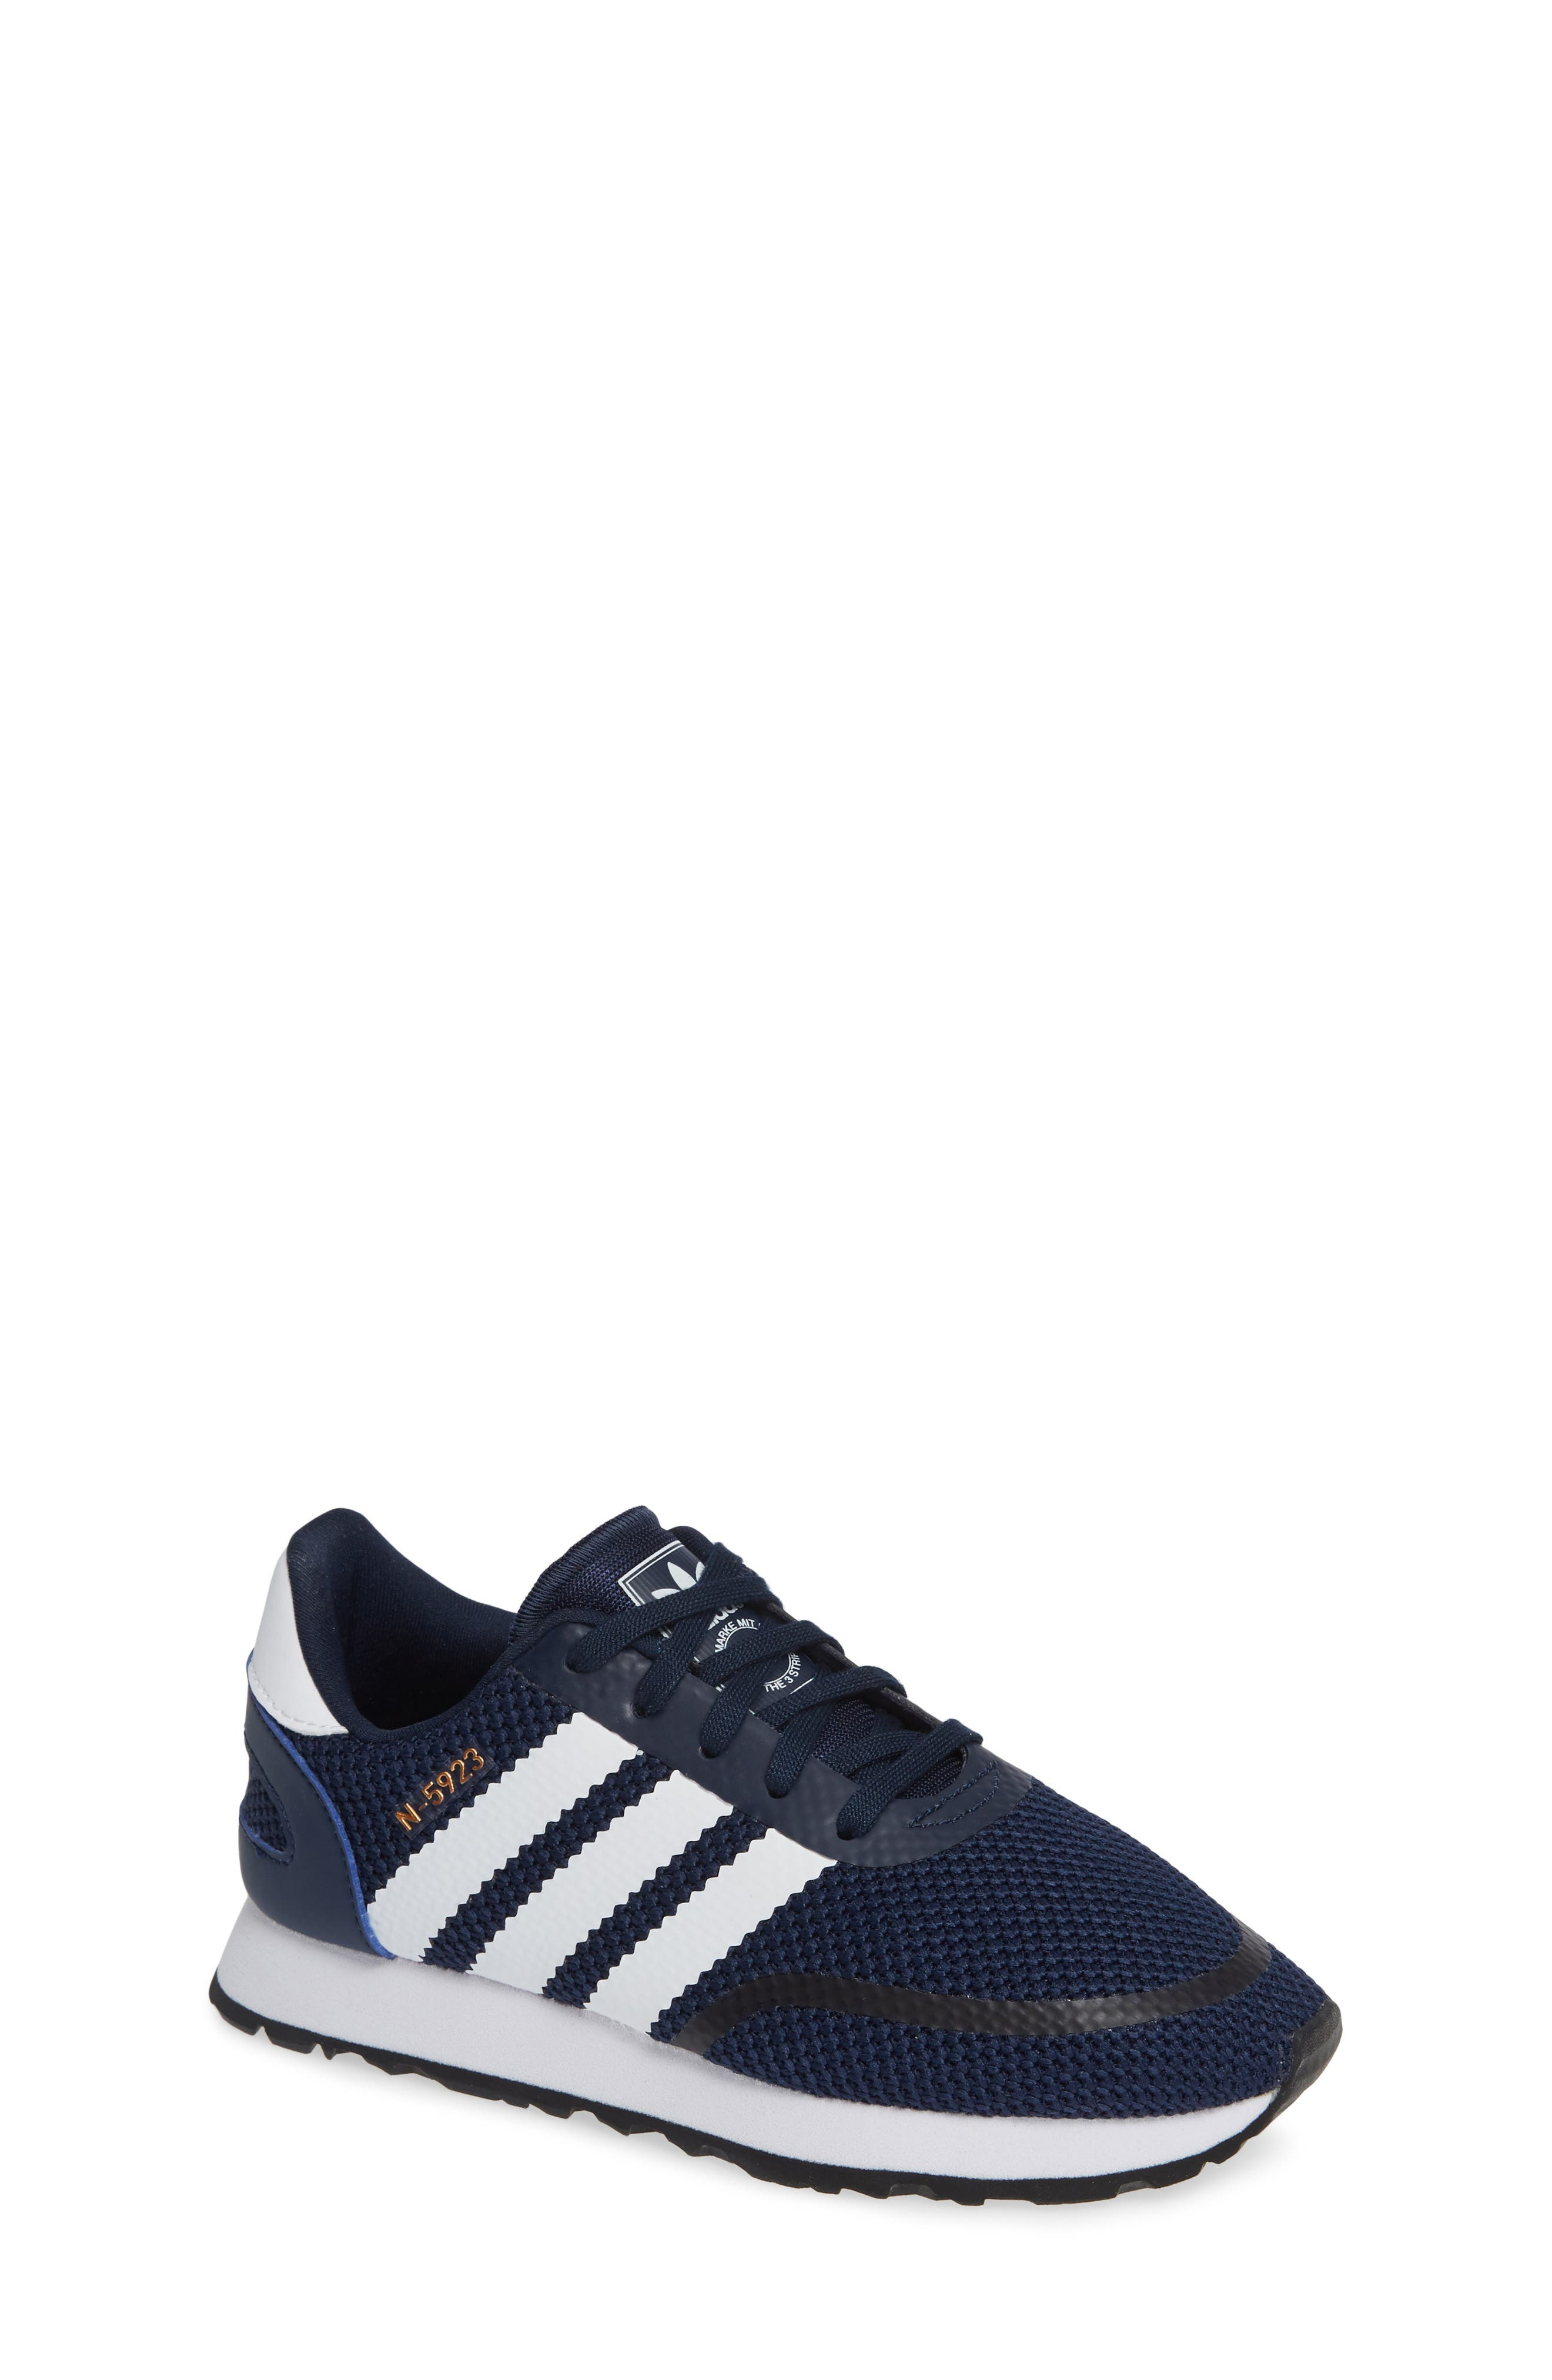 N-5923 Classic Sneaker,                             Main thumbnail 1, color,                             COLLEGIATE NAVY / WHITE